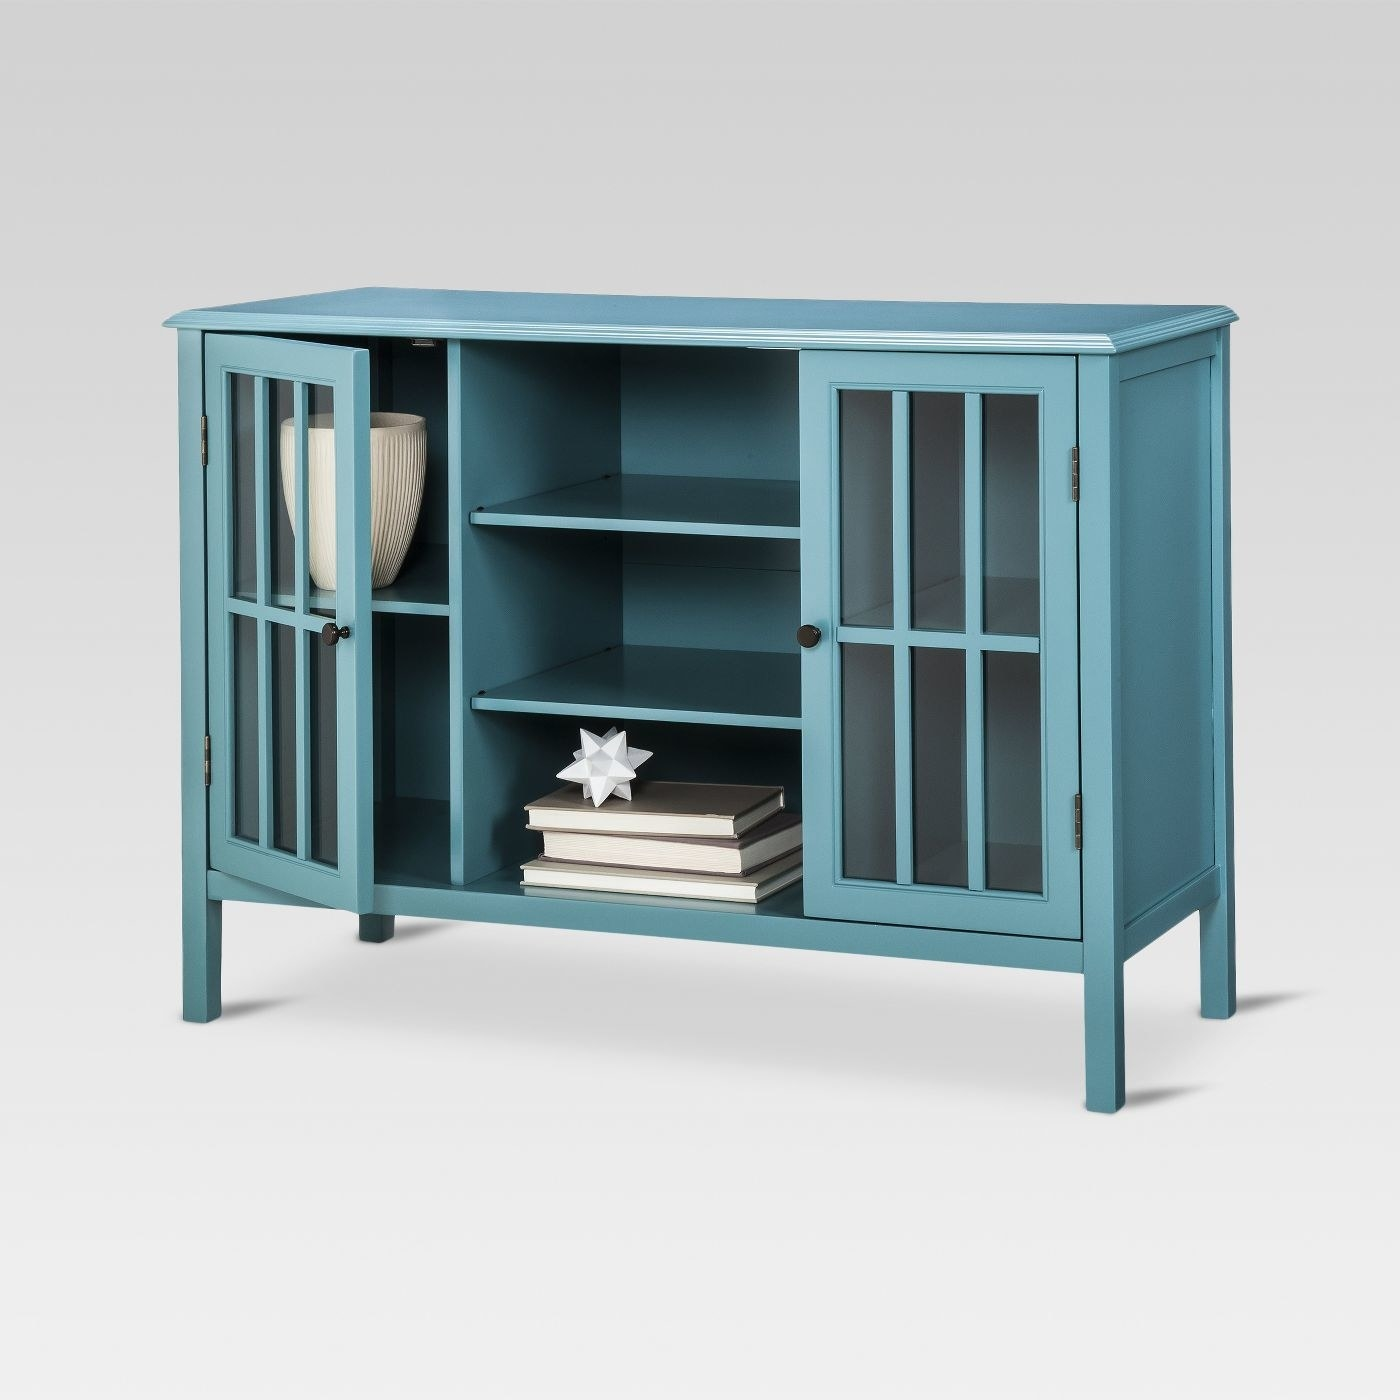 teal cabinet with two glass doors and center shelves